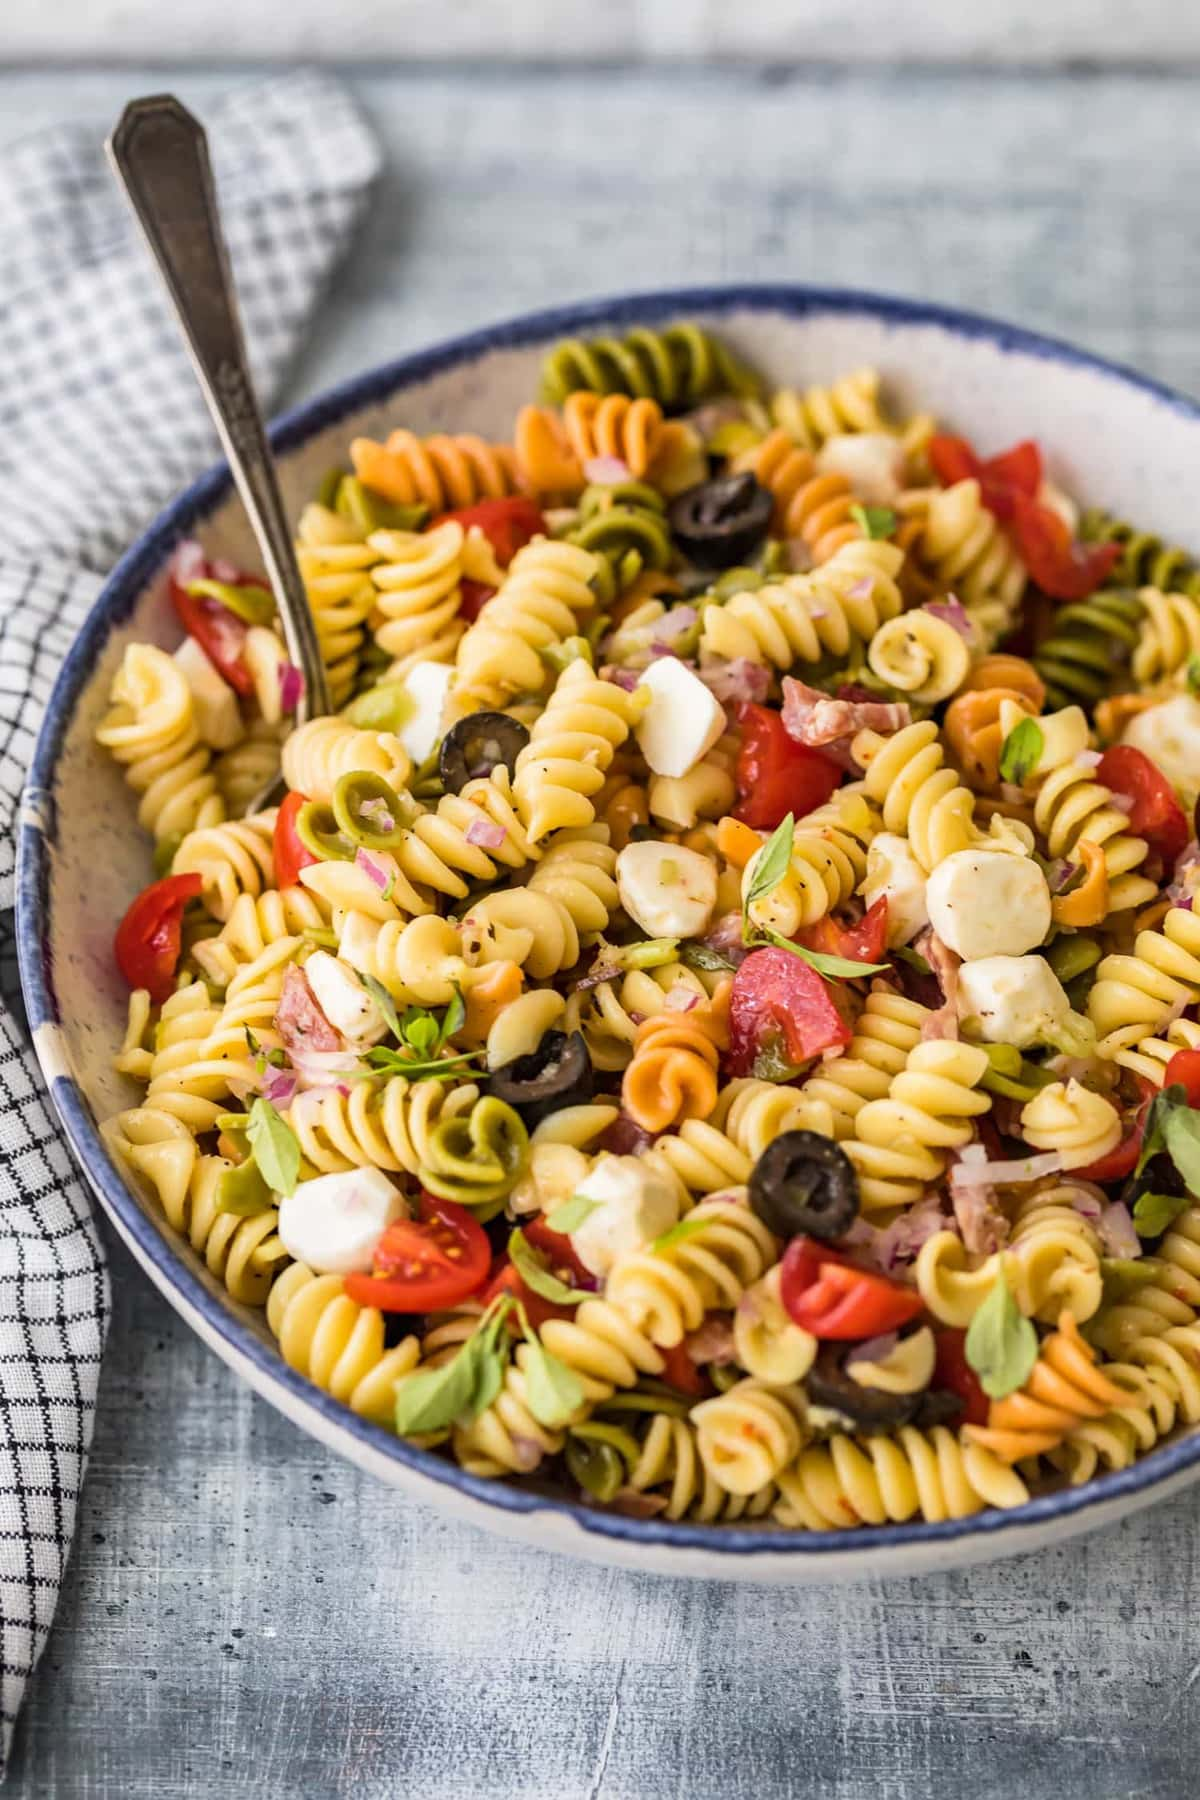 Classic Italian Pasta Salad Recipe served in a bowl with a spoon